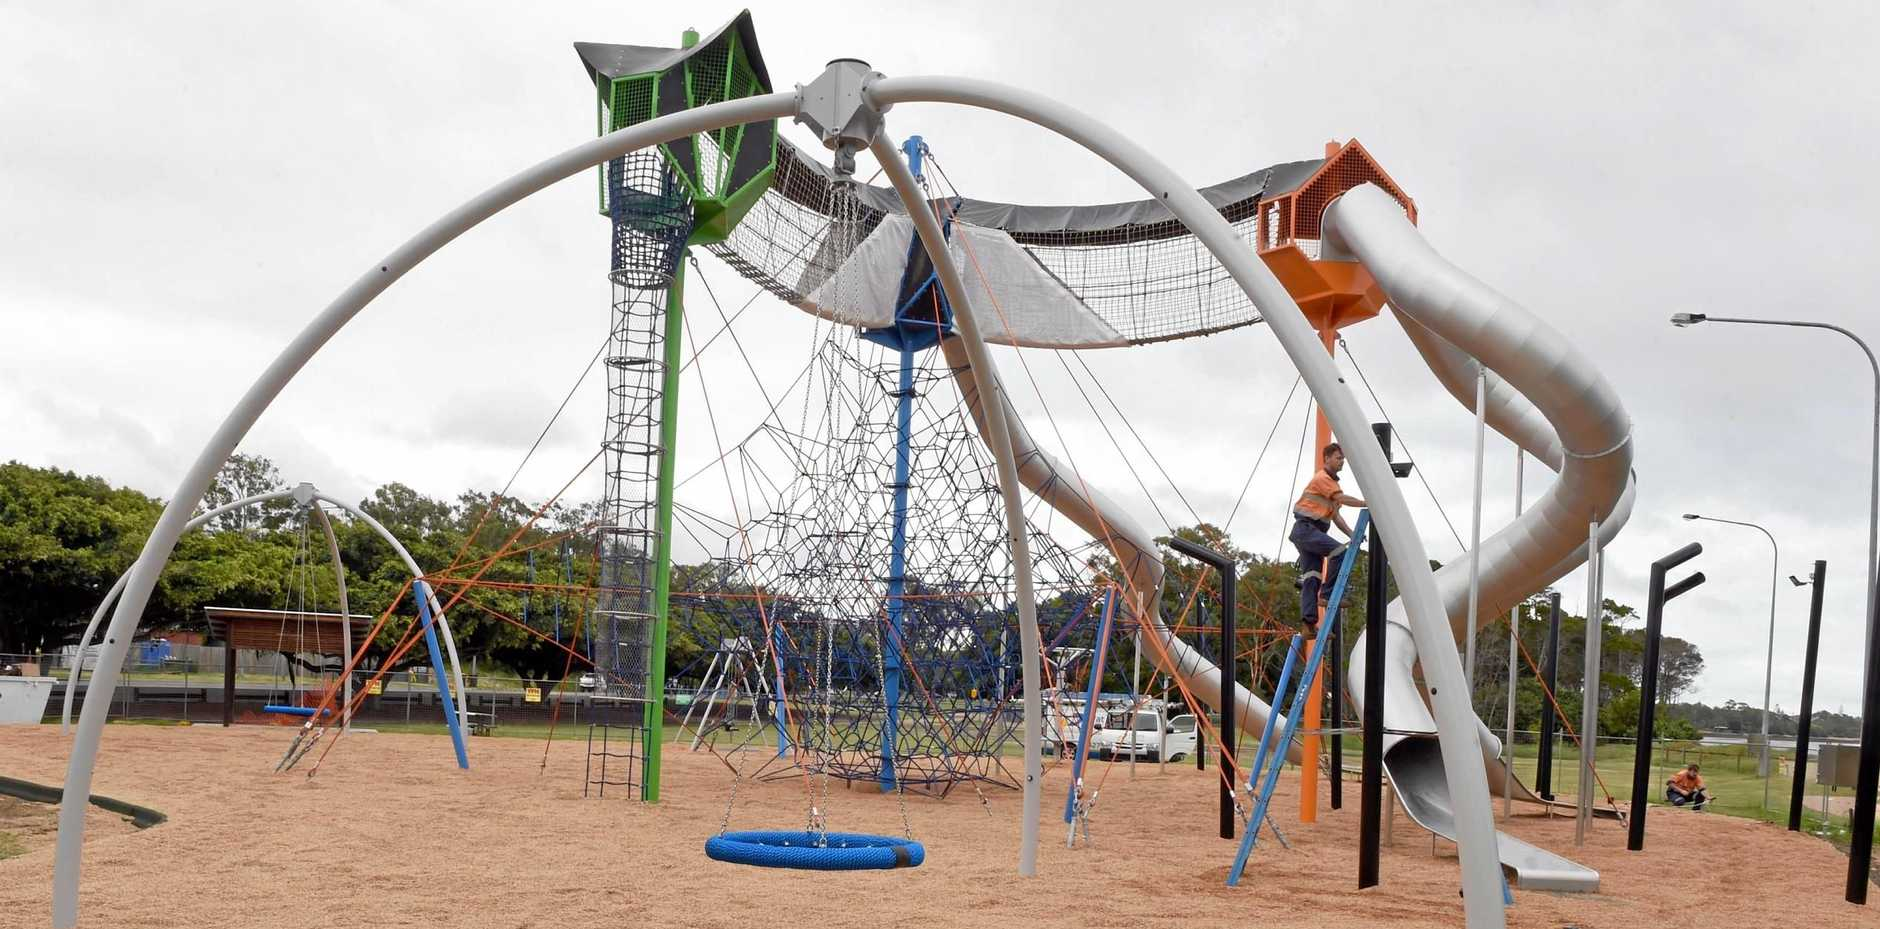 The construction of Hervey Bay's Seafront adventure playground continues.